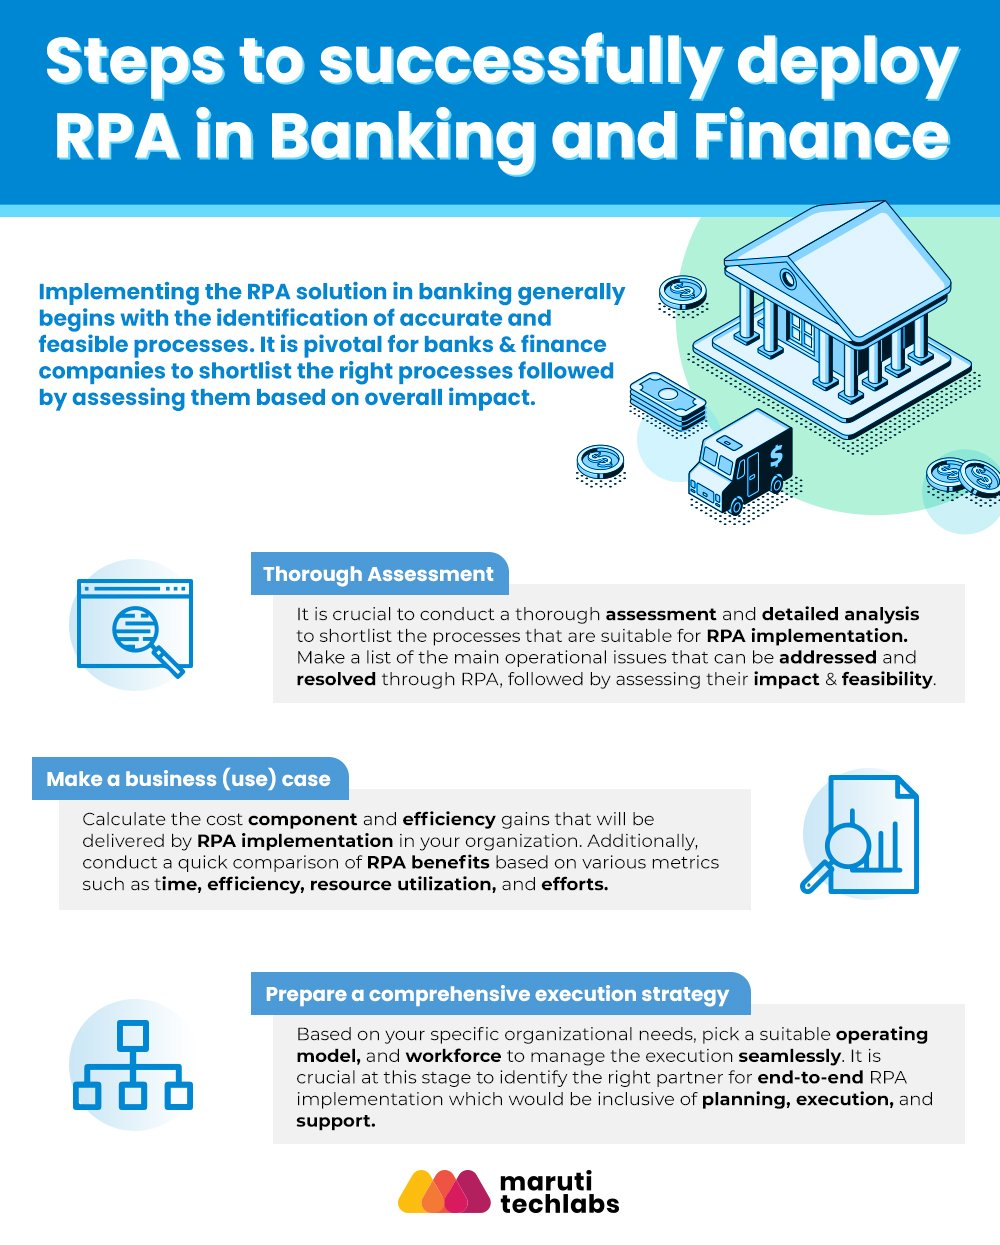 How to deploy rpa in banking and finance successfully